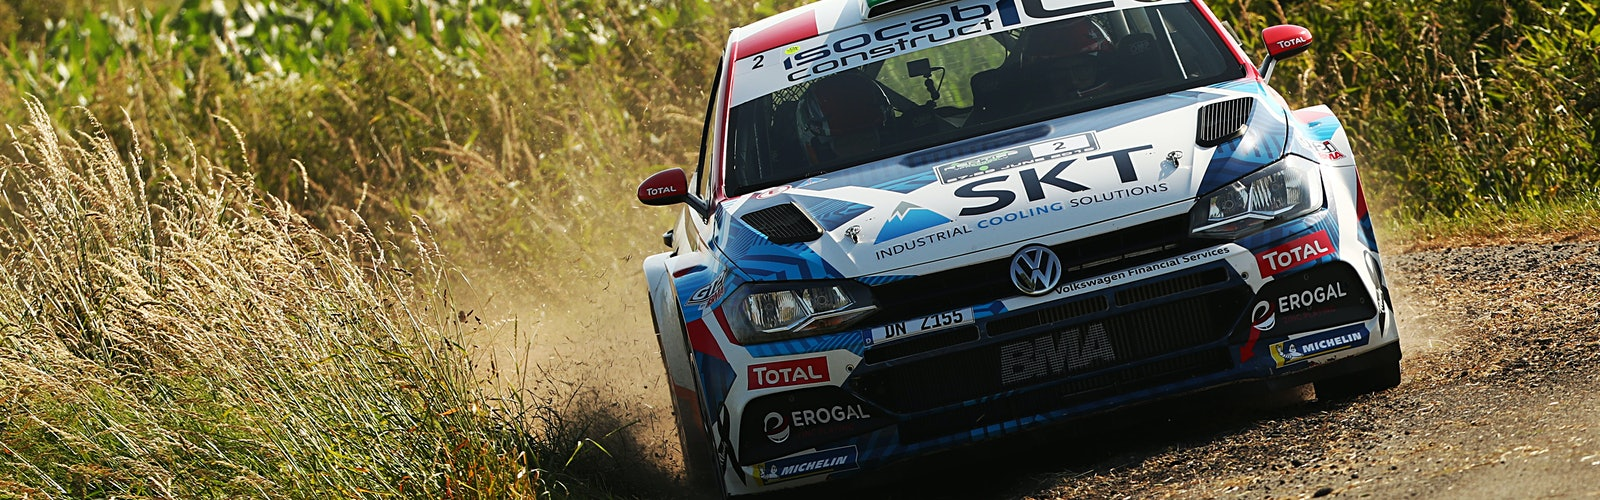 Craig Breen / Paul Nagle VW Polo GTI R5